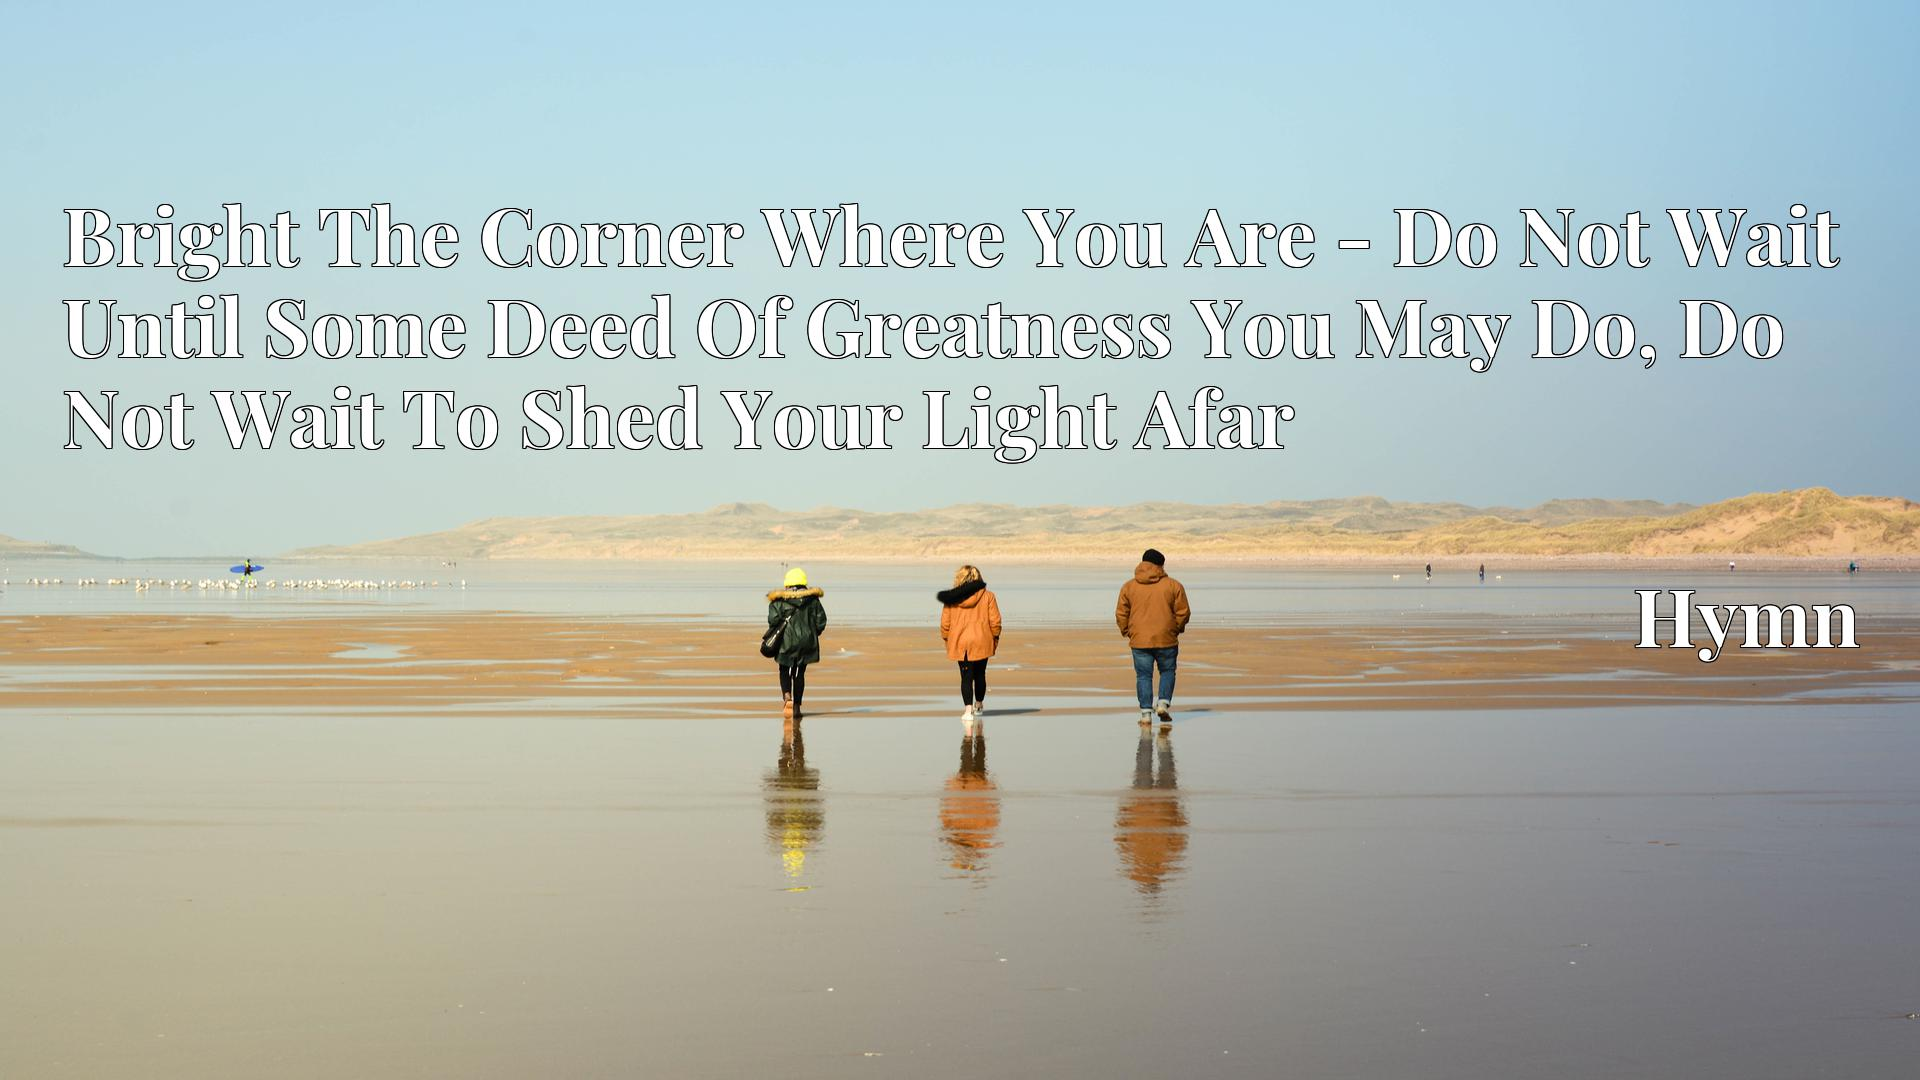 Bright The Corner Where You Are - Do Not Wait Until Some Deed Of Greatness You May Do, Do Not Wait To Shed Your Light Afar - Hymn